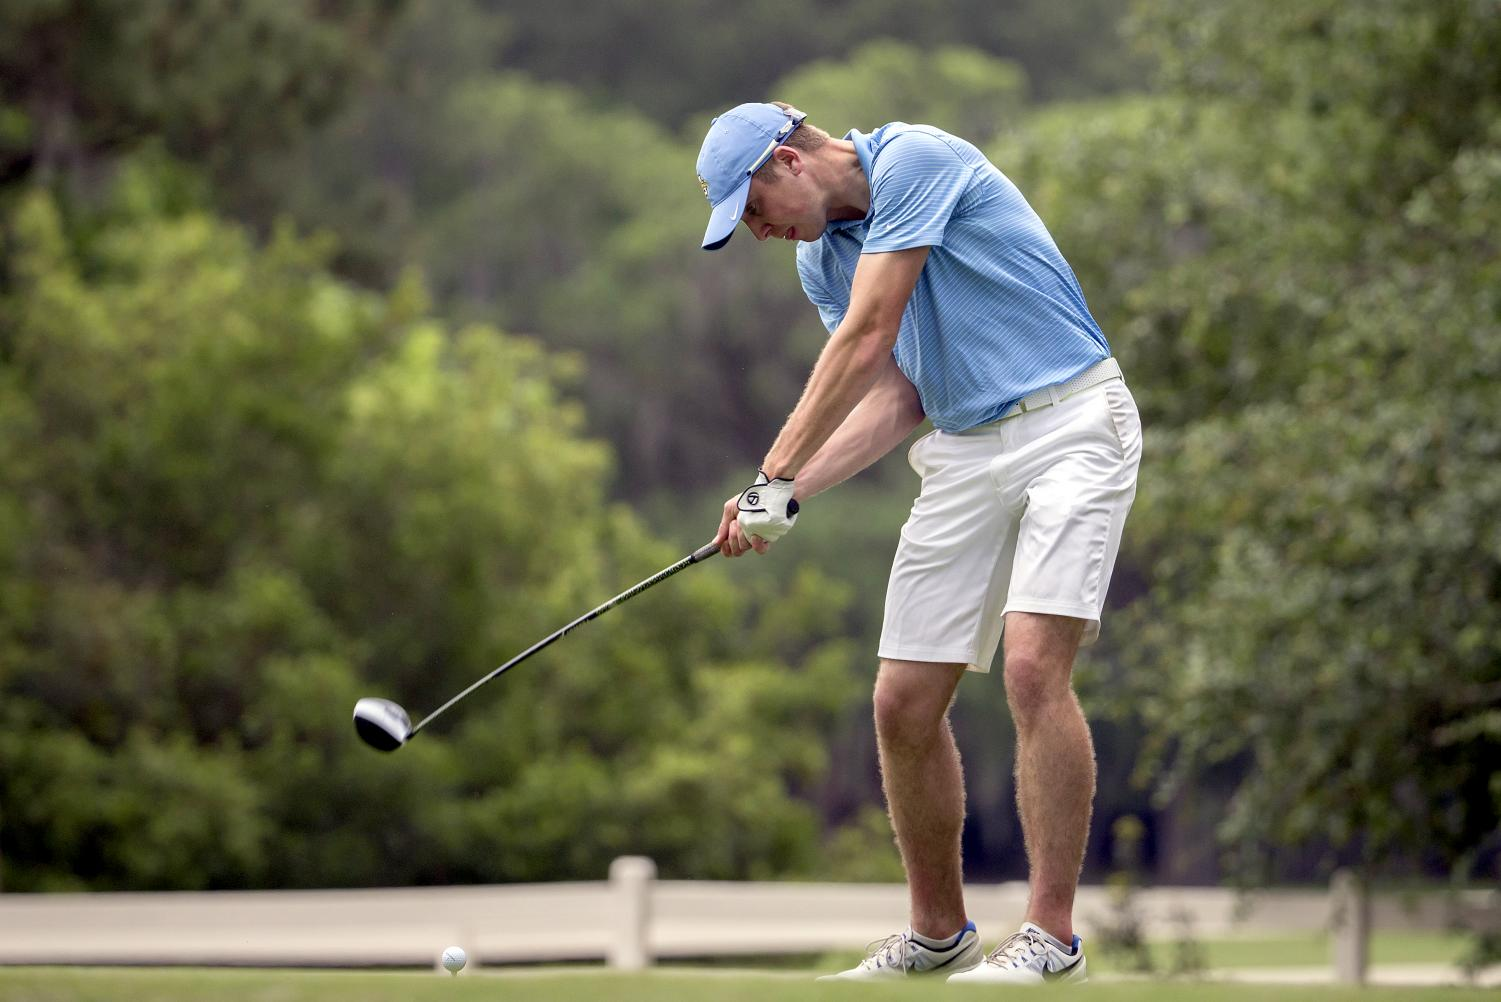 Marquette golfer Oliver Farrell prepares to hit a drive at the BIG EAST championships in Okatie, South Carolina. (Photo courtesy of Marquette Athletics.)